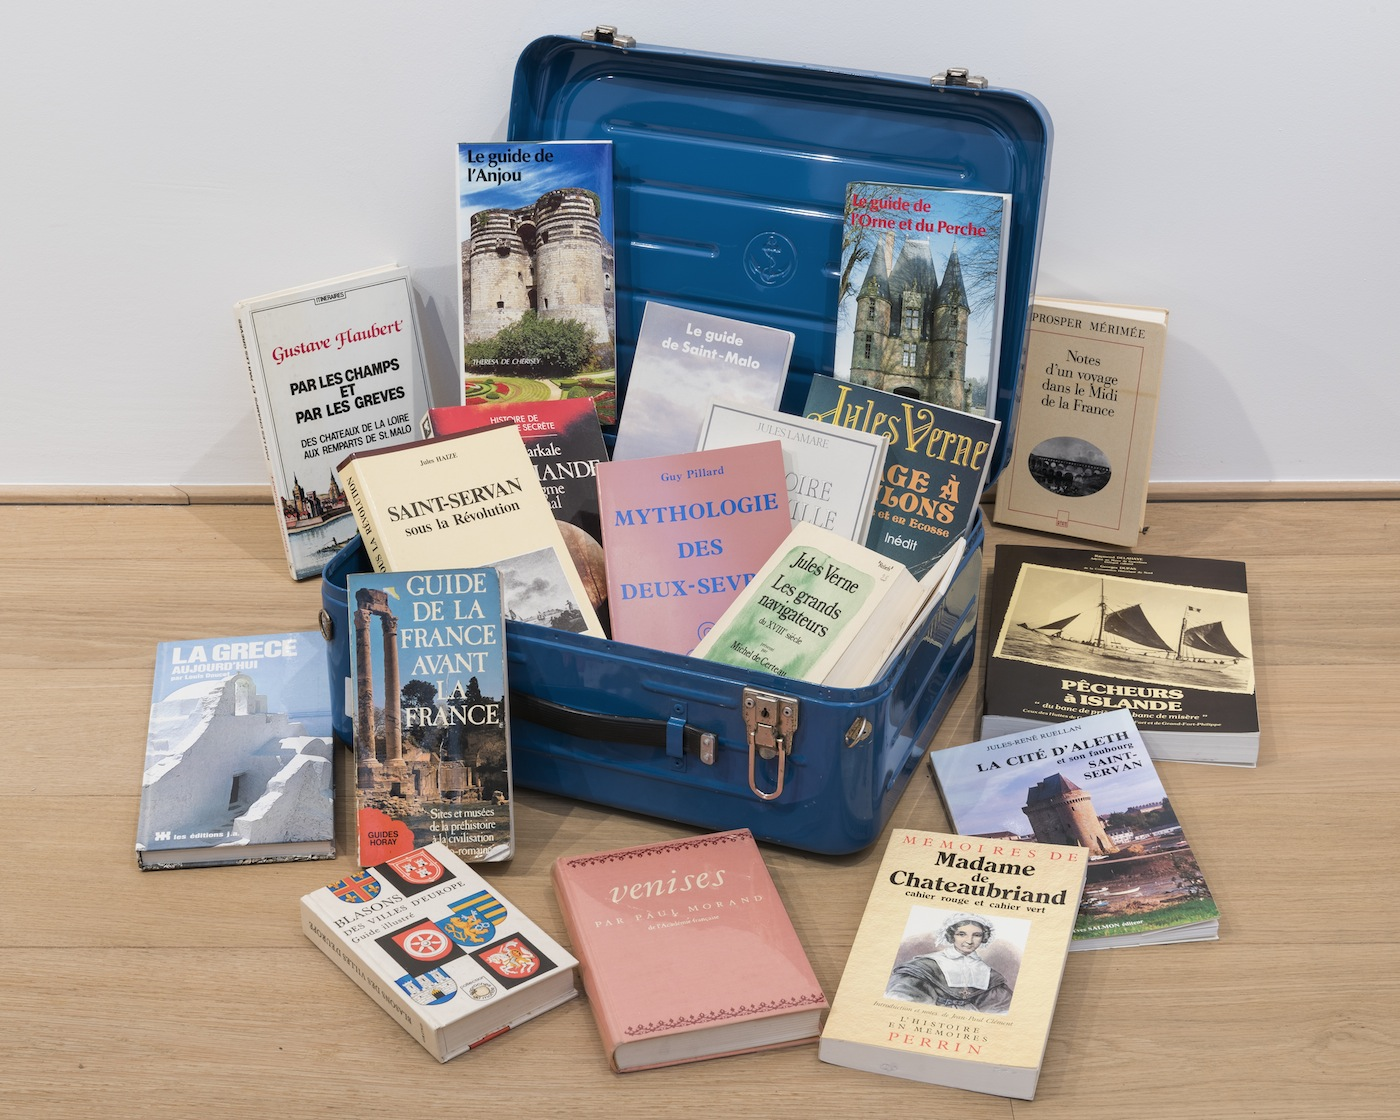 Raymond Hains, Valises documentaires, Archives of the Artist. Foto: Thomas Hains